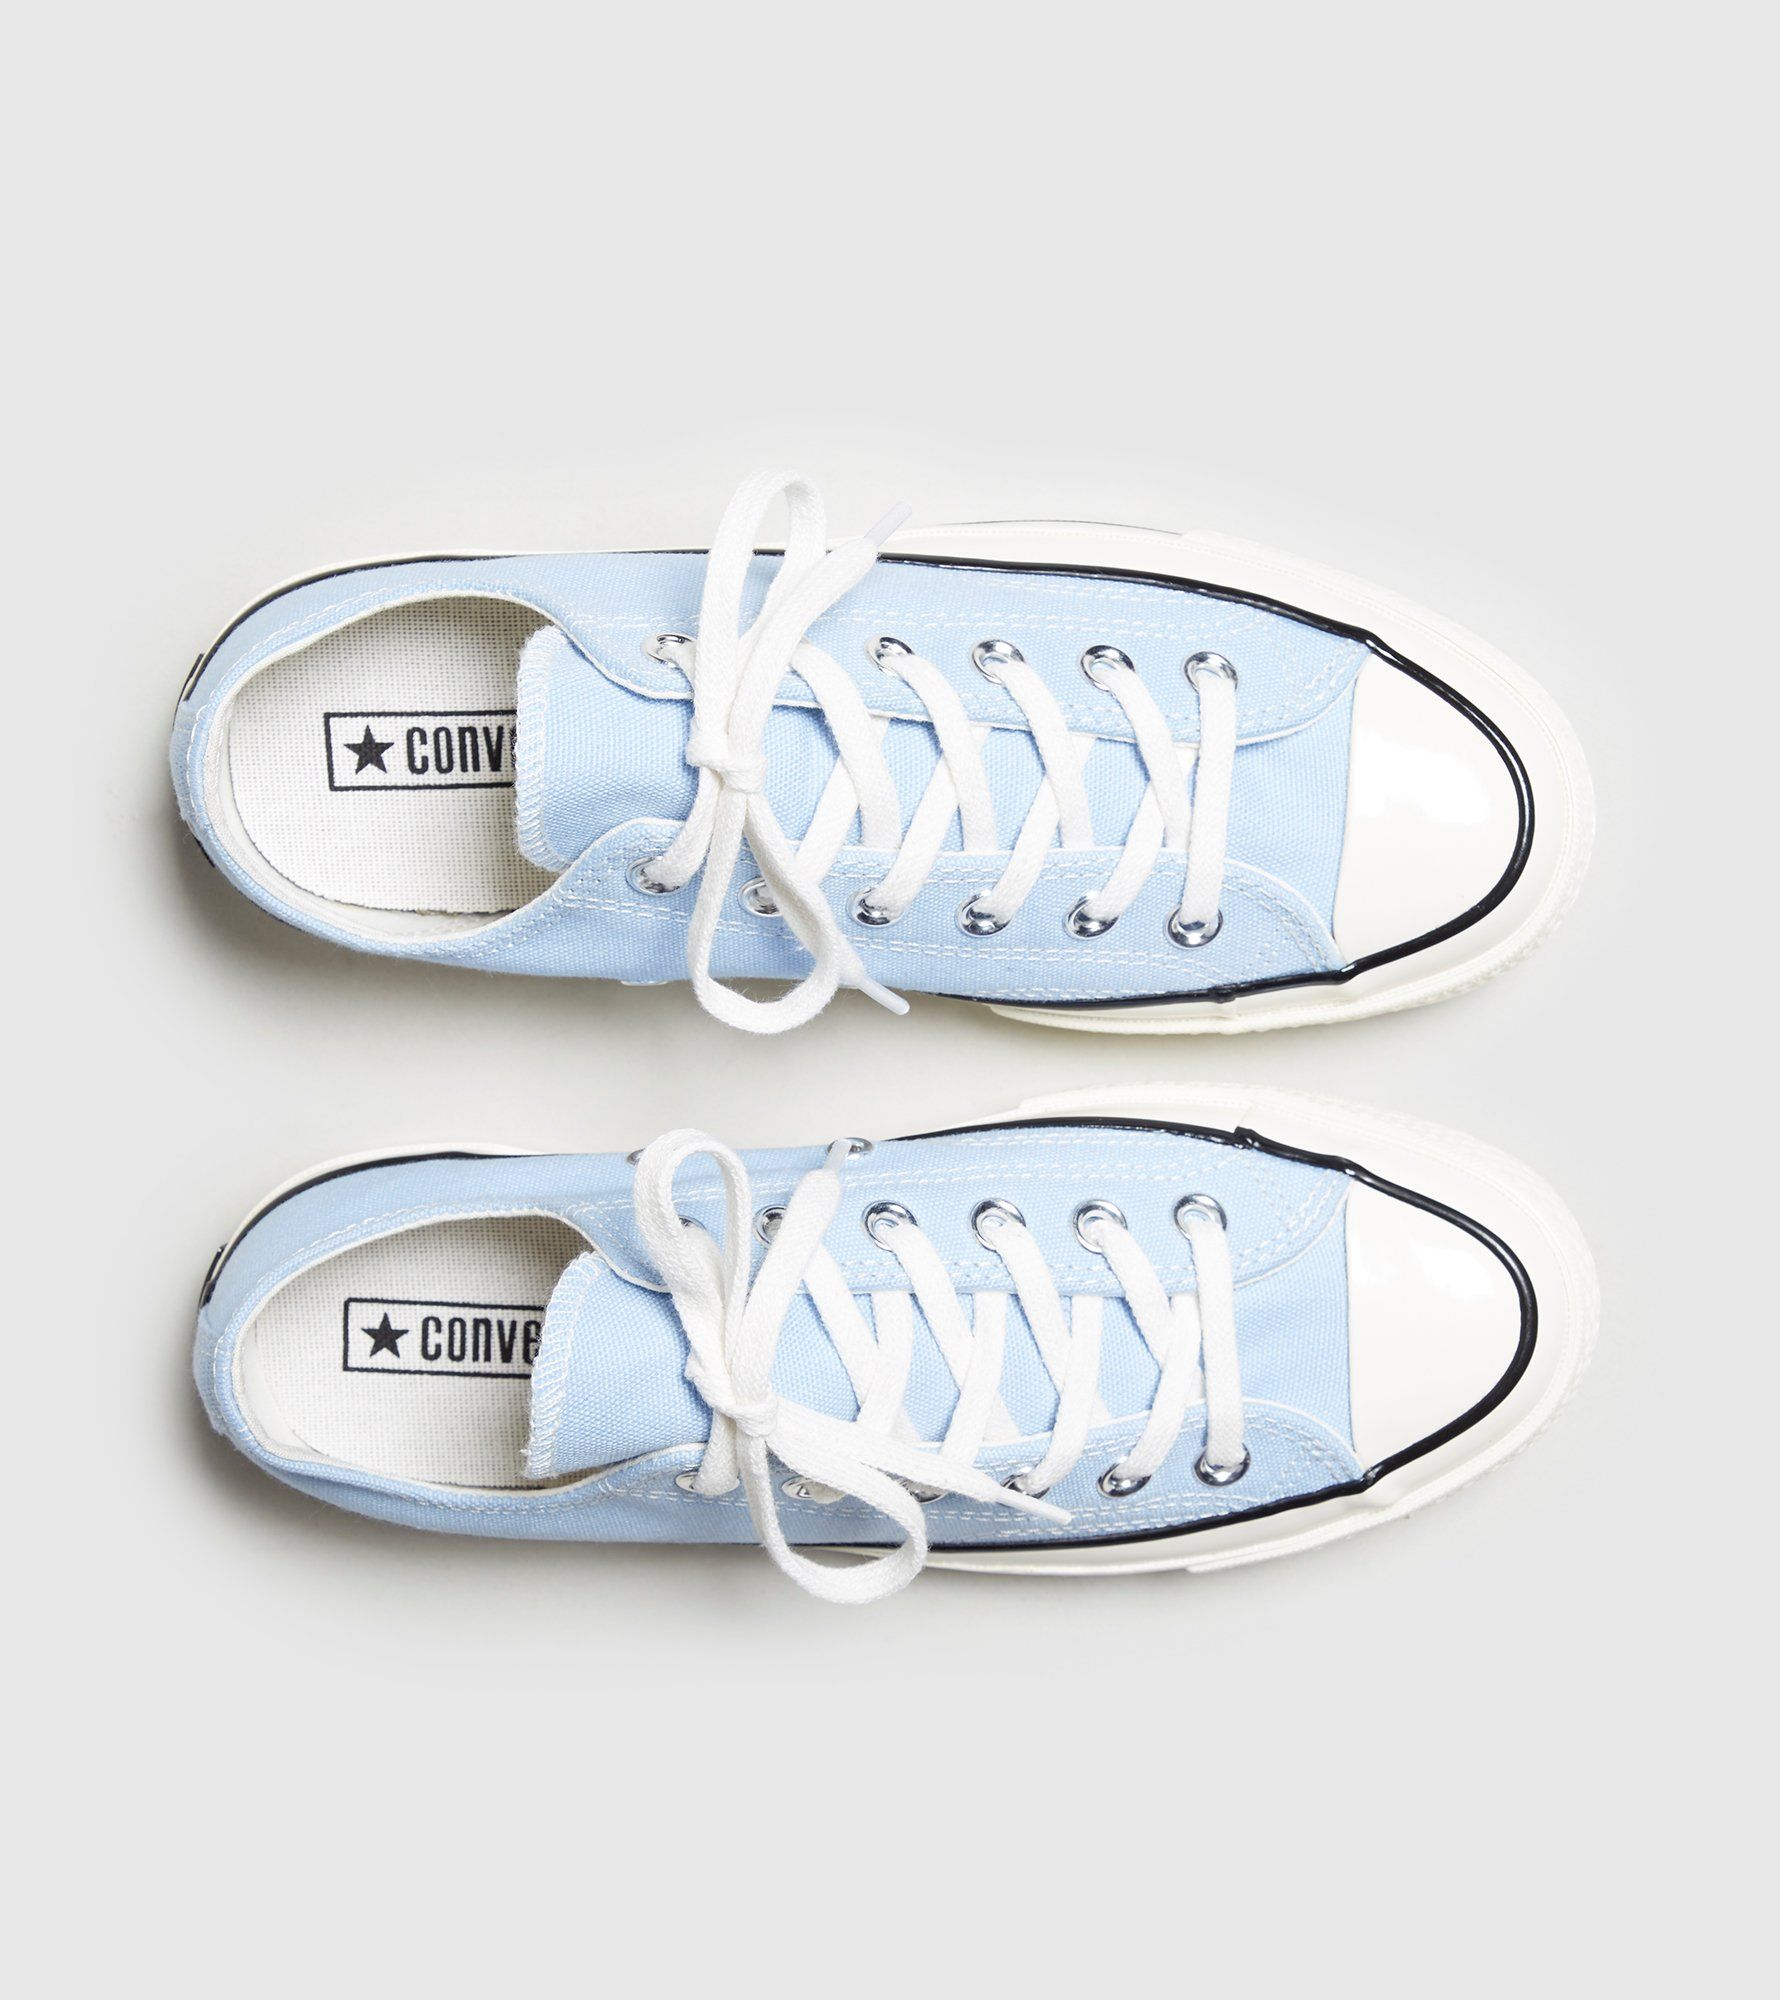 Converse Chuck Taylor All Star 70's Low Women's